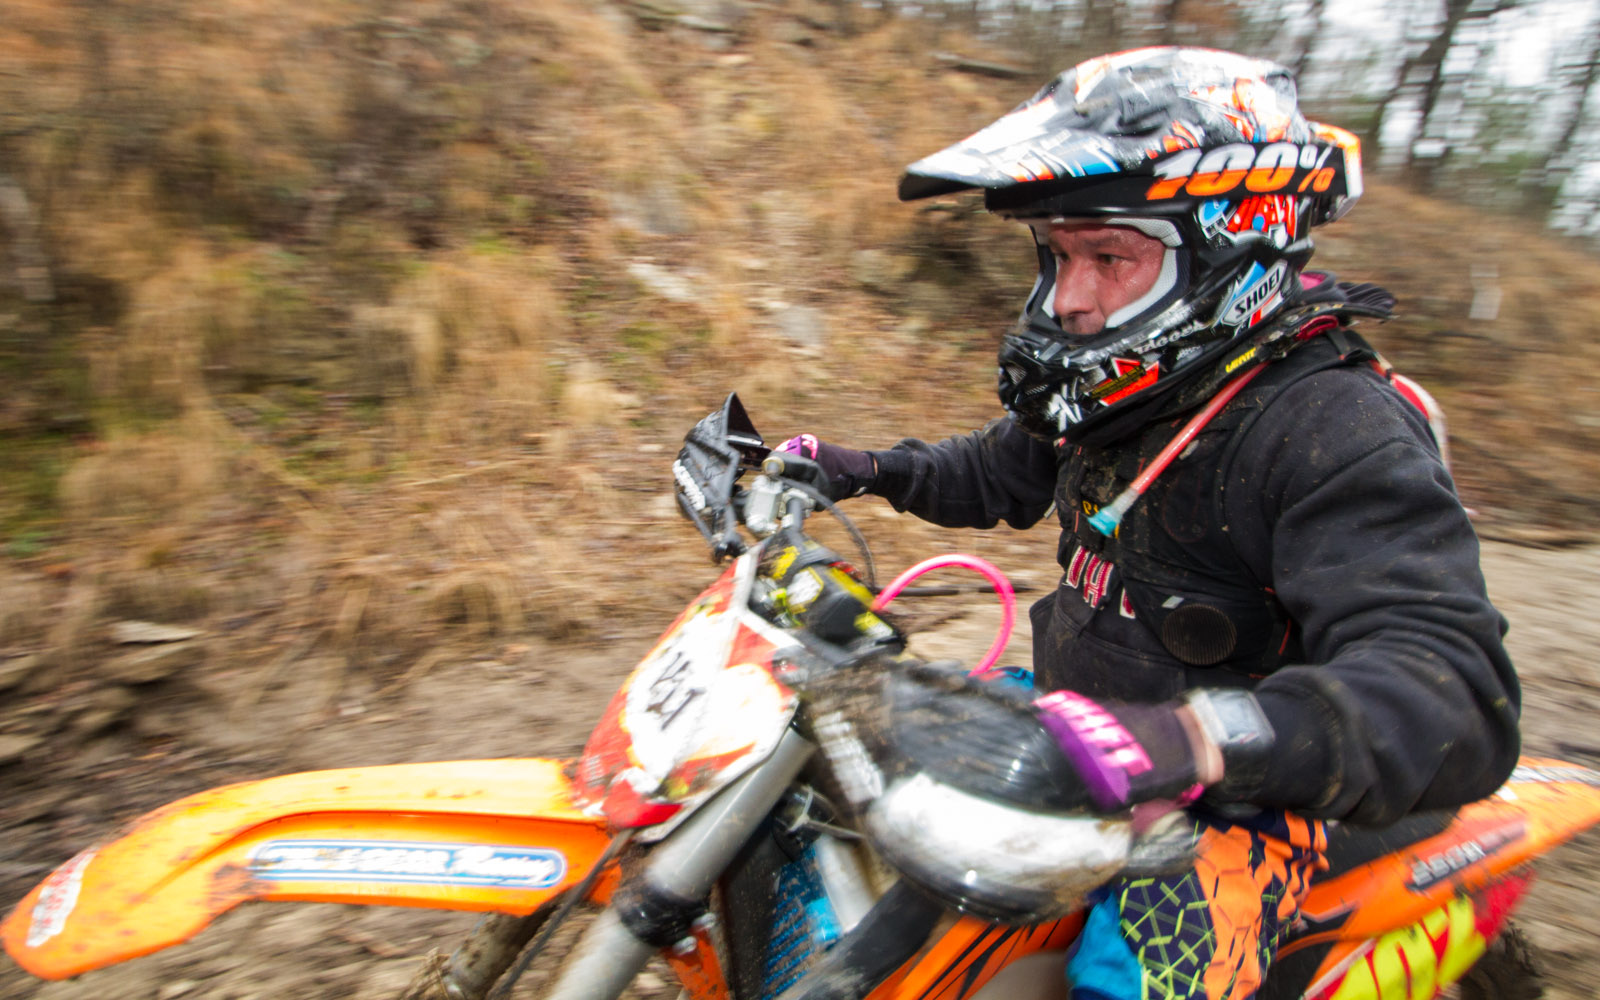 revlimiter-extreme-enduro-saturday-6